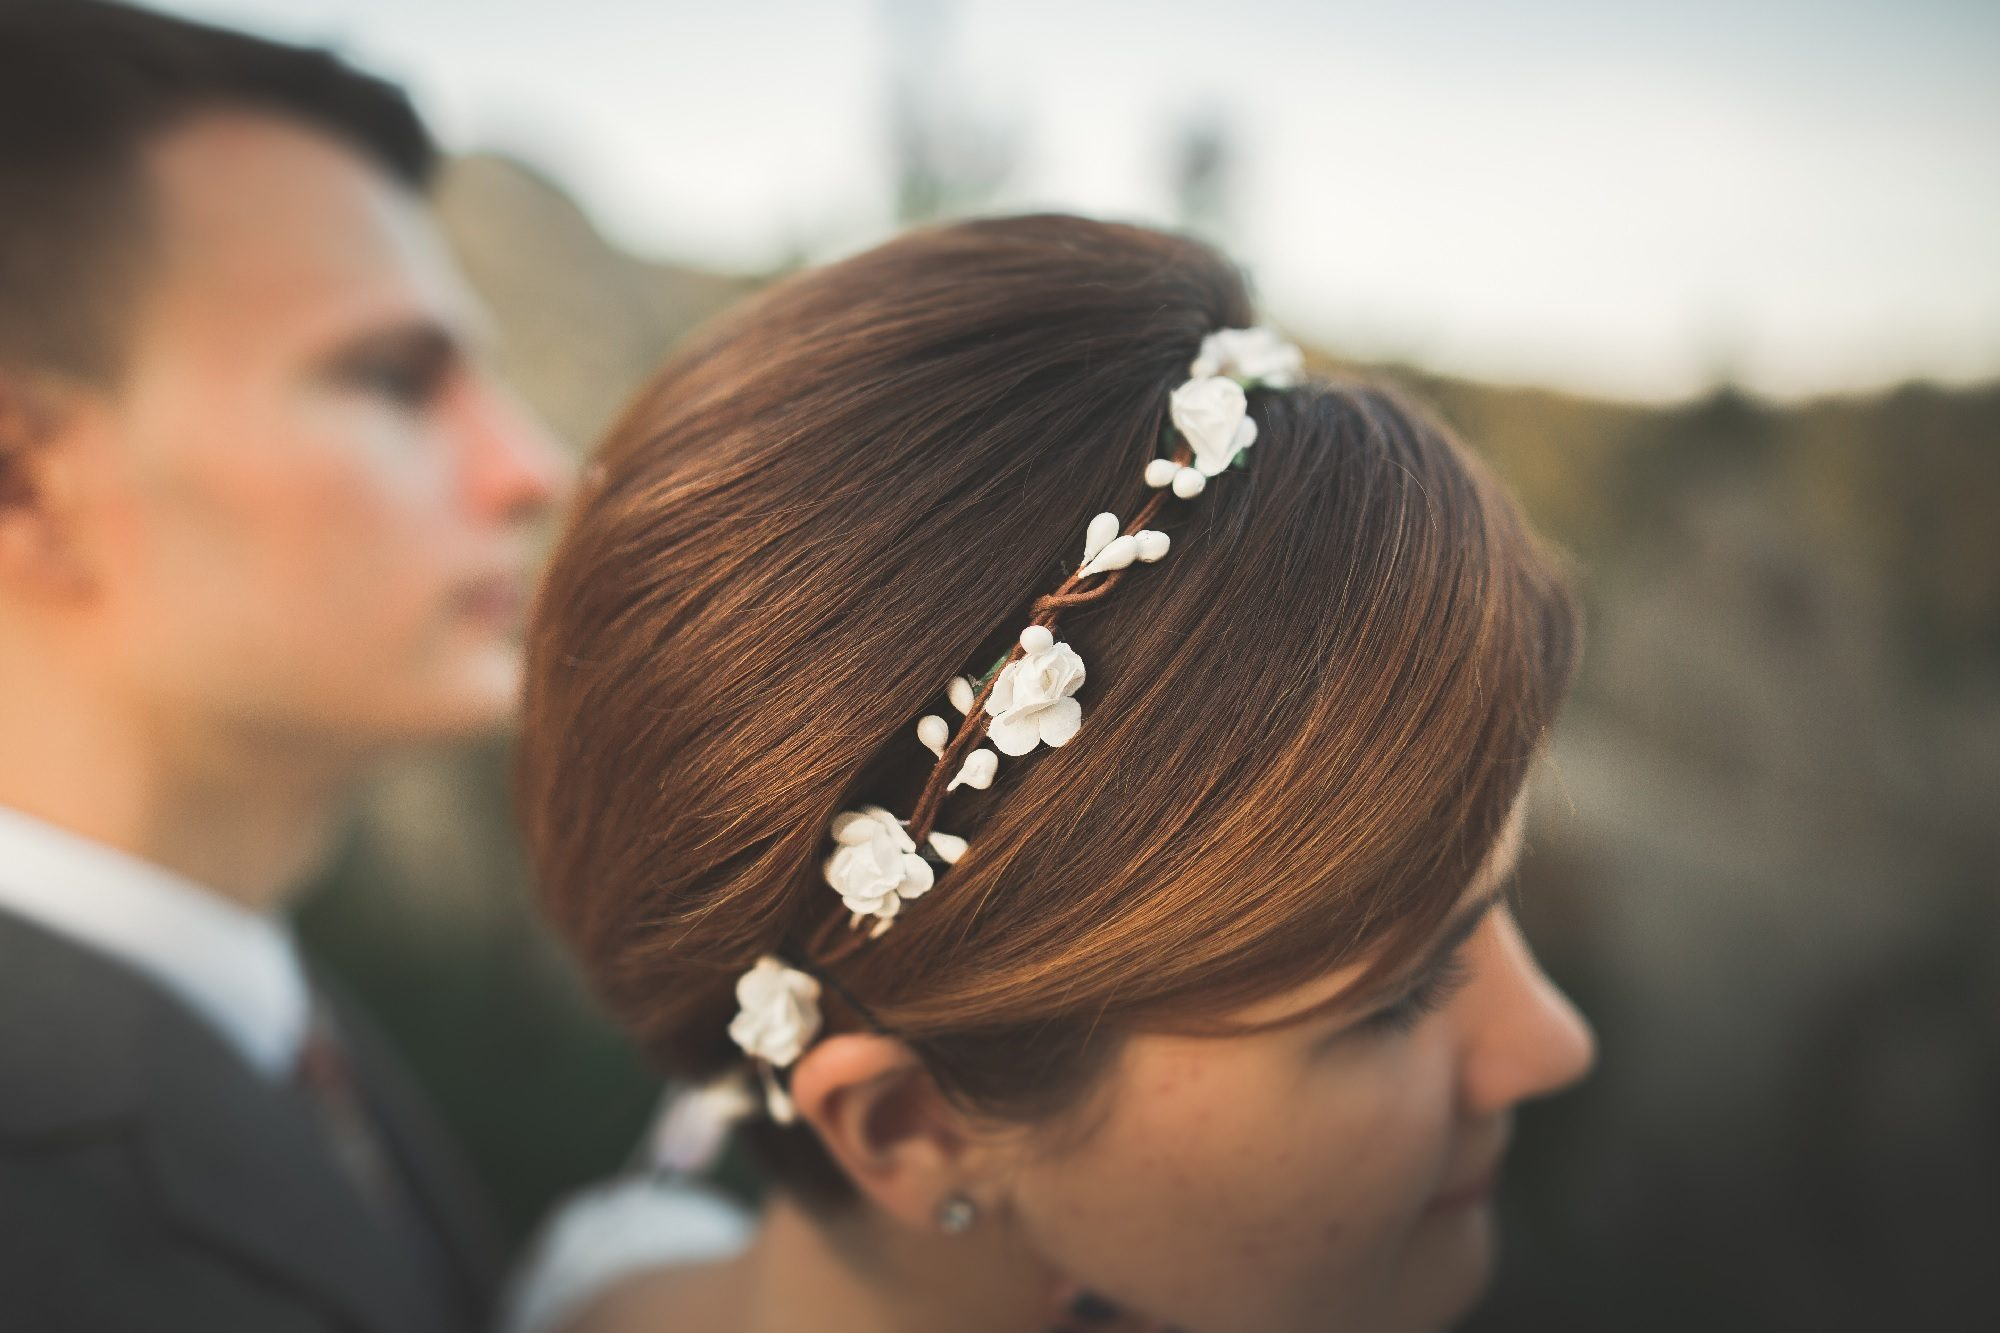 wedding hairstyles for short hair - short and sleek shutterstock